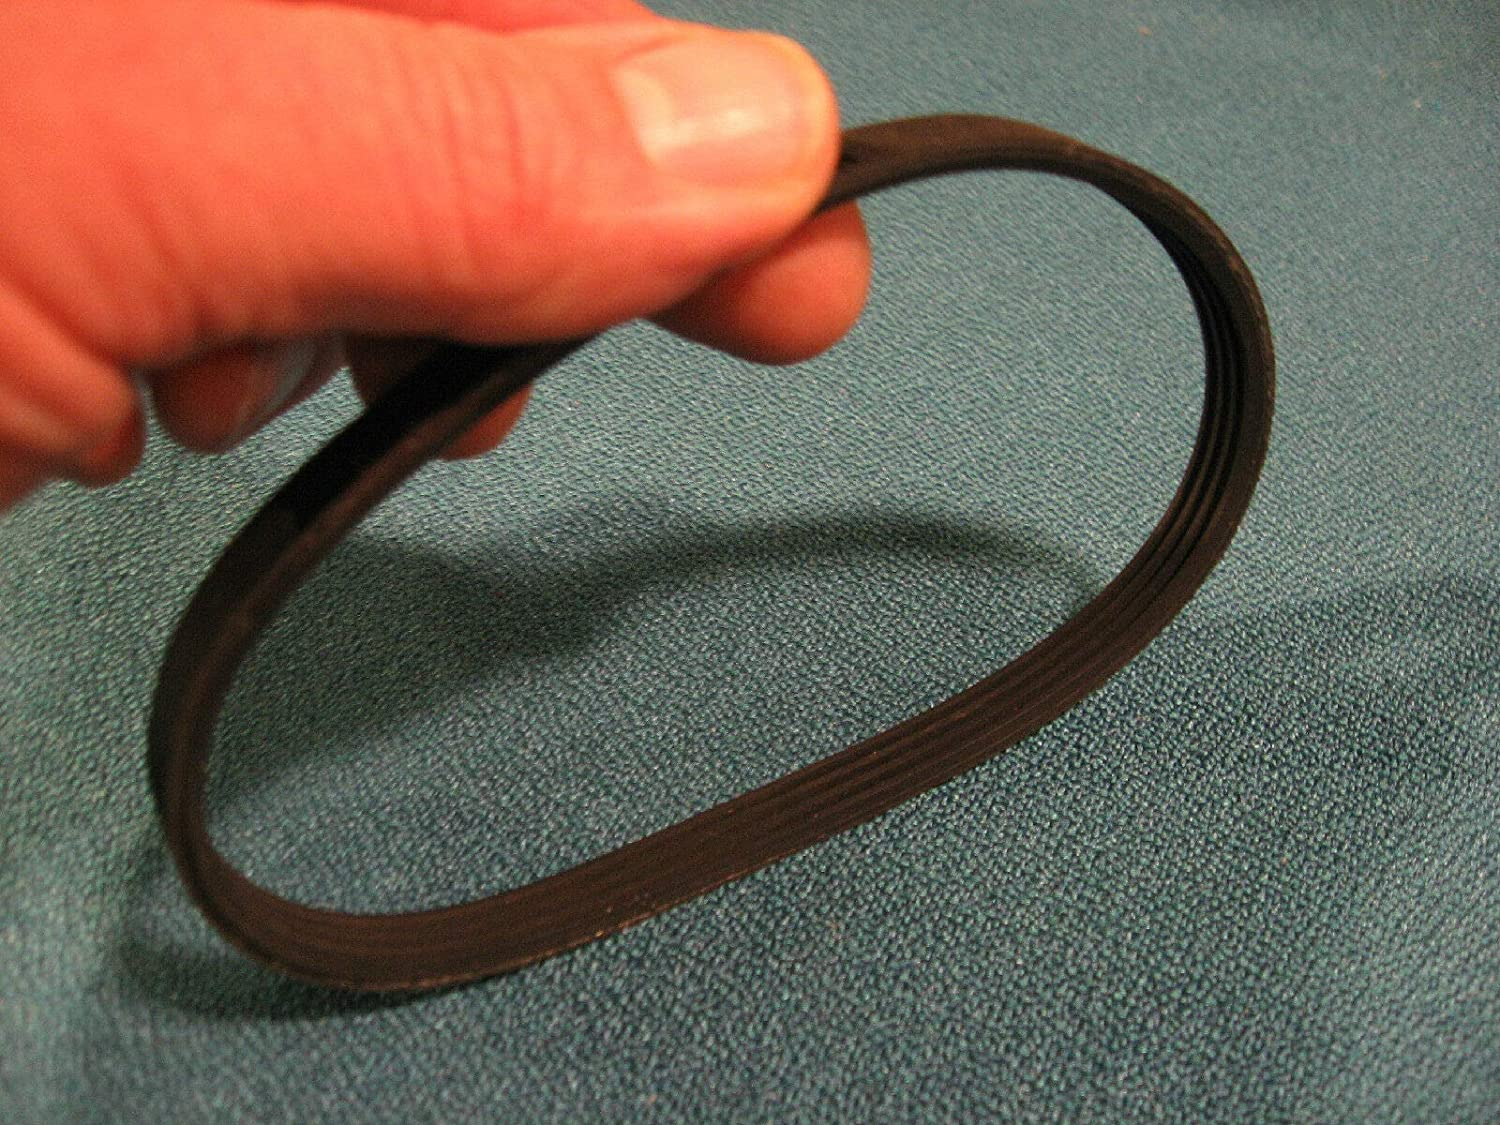 Rubber Drive Belt for Sears Craftsman 124.21 Brand new Fits Our shop most popular Saw Band Model